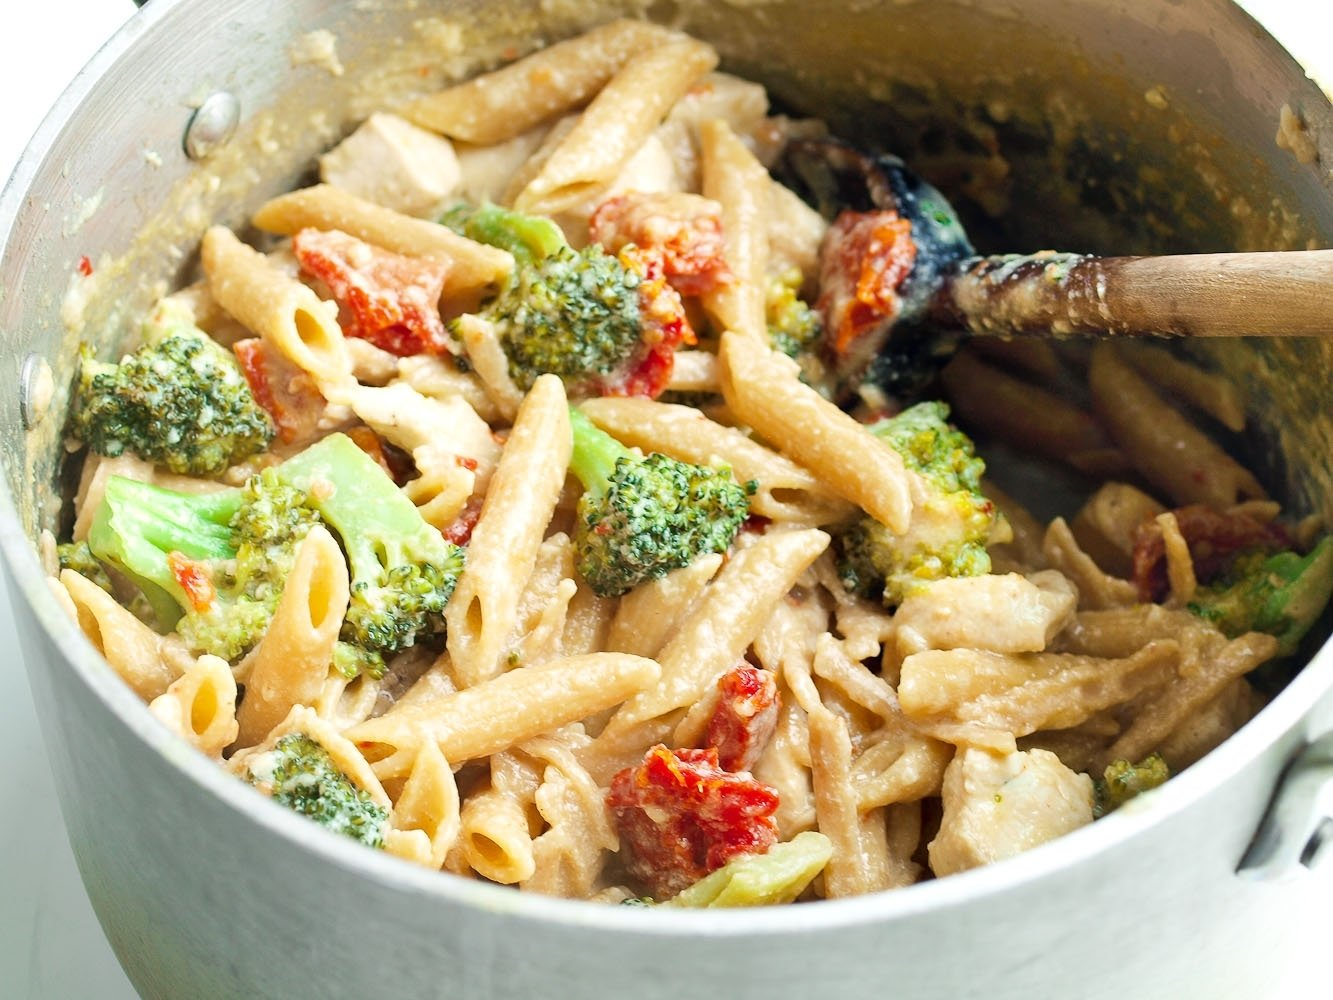 10 Ideal Ideas To Cook For Dinner tangy one pot chicken and veggie pasta dinner healthy ideas for kids 2021